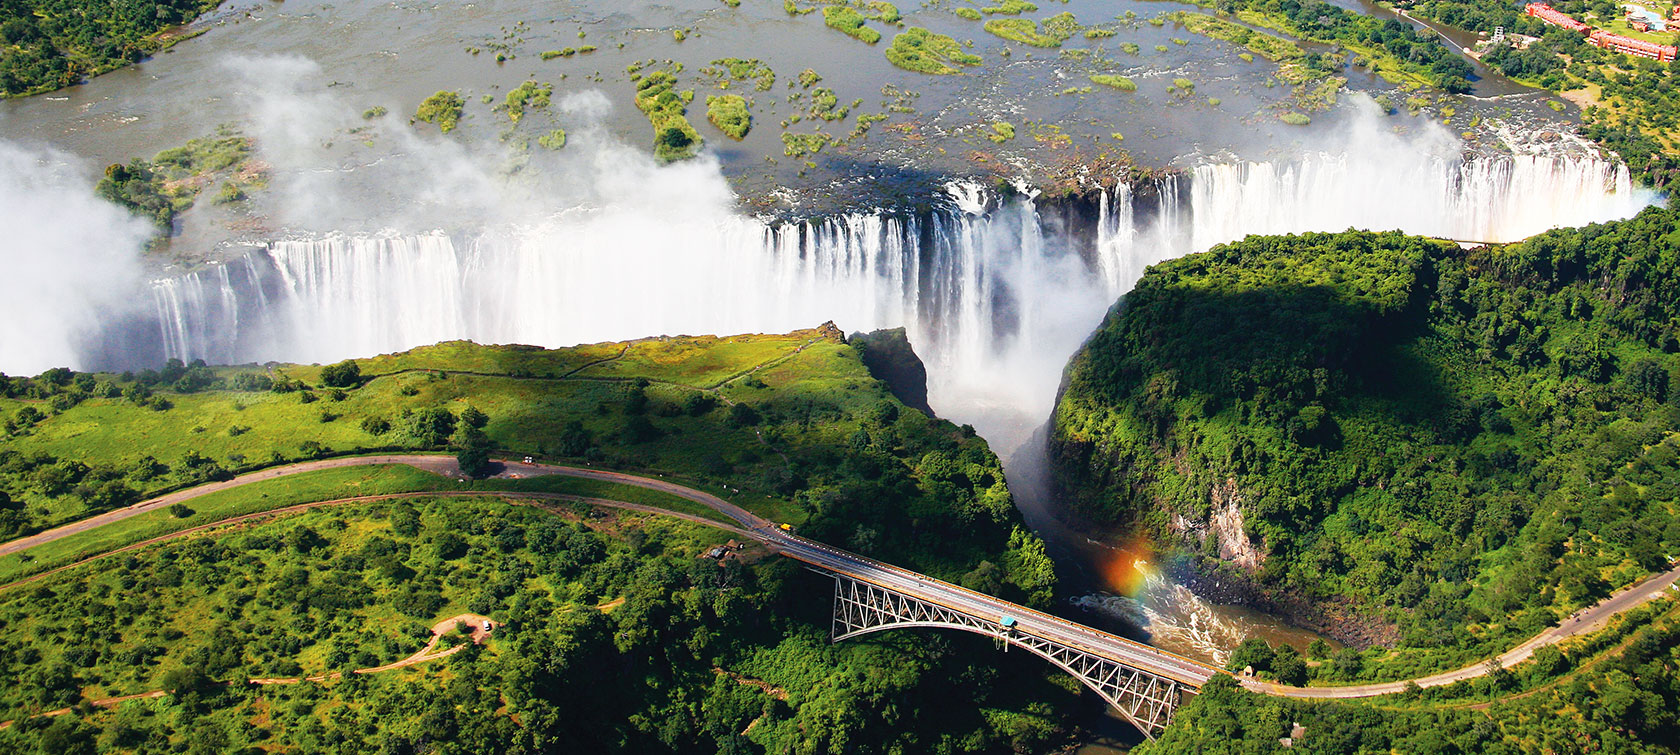 "victoria falls Victoria falls and zambezi national parks are situated on the western tip of zimbabwe the falls, known by the local kololo tribe as mosi oa tunya- the smoke that thunders, is one of the ""seven wonders of the world"" and one of the largest and most spectacular waterfalls on earth."